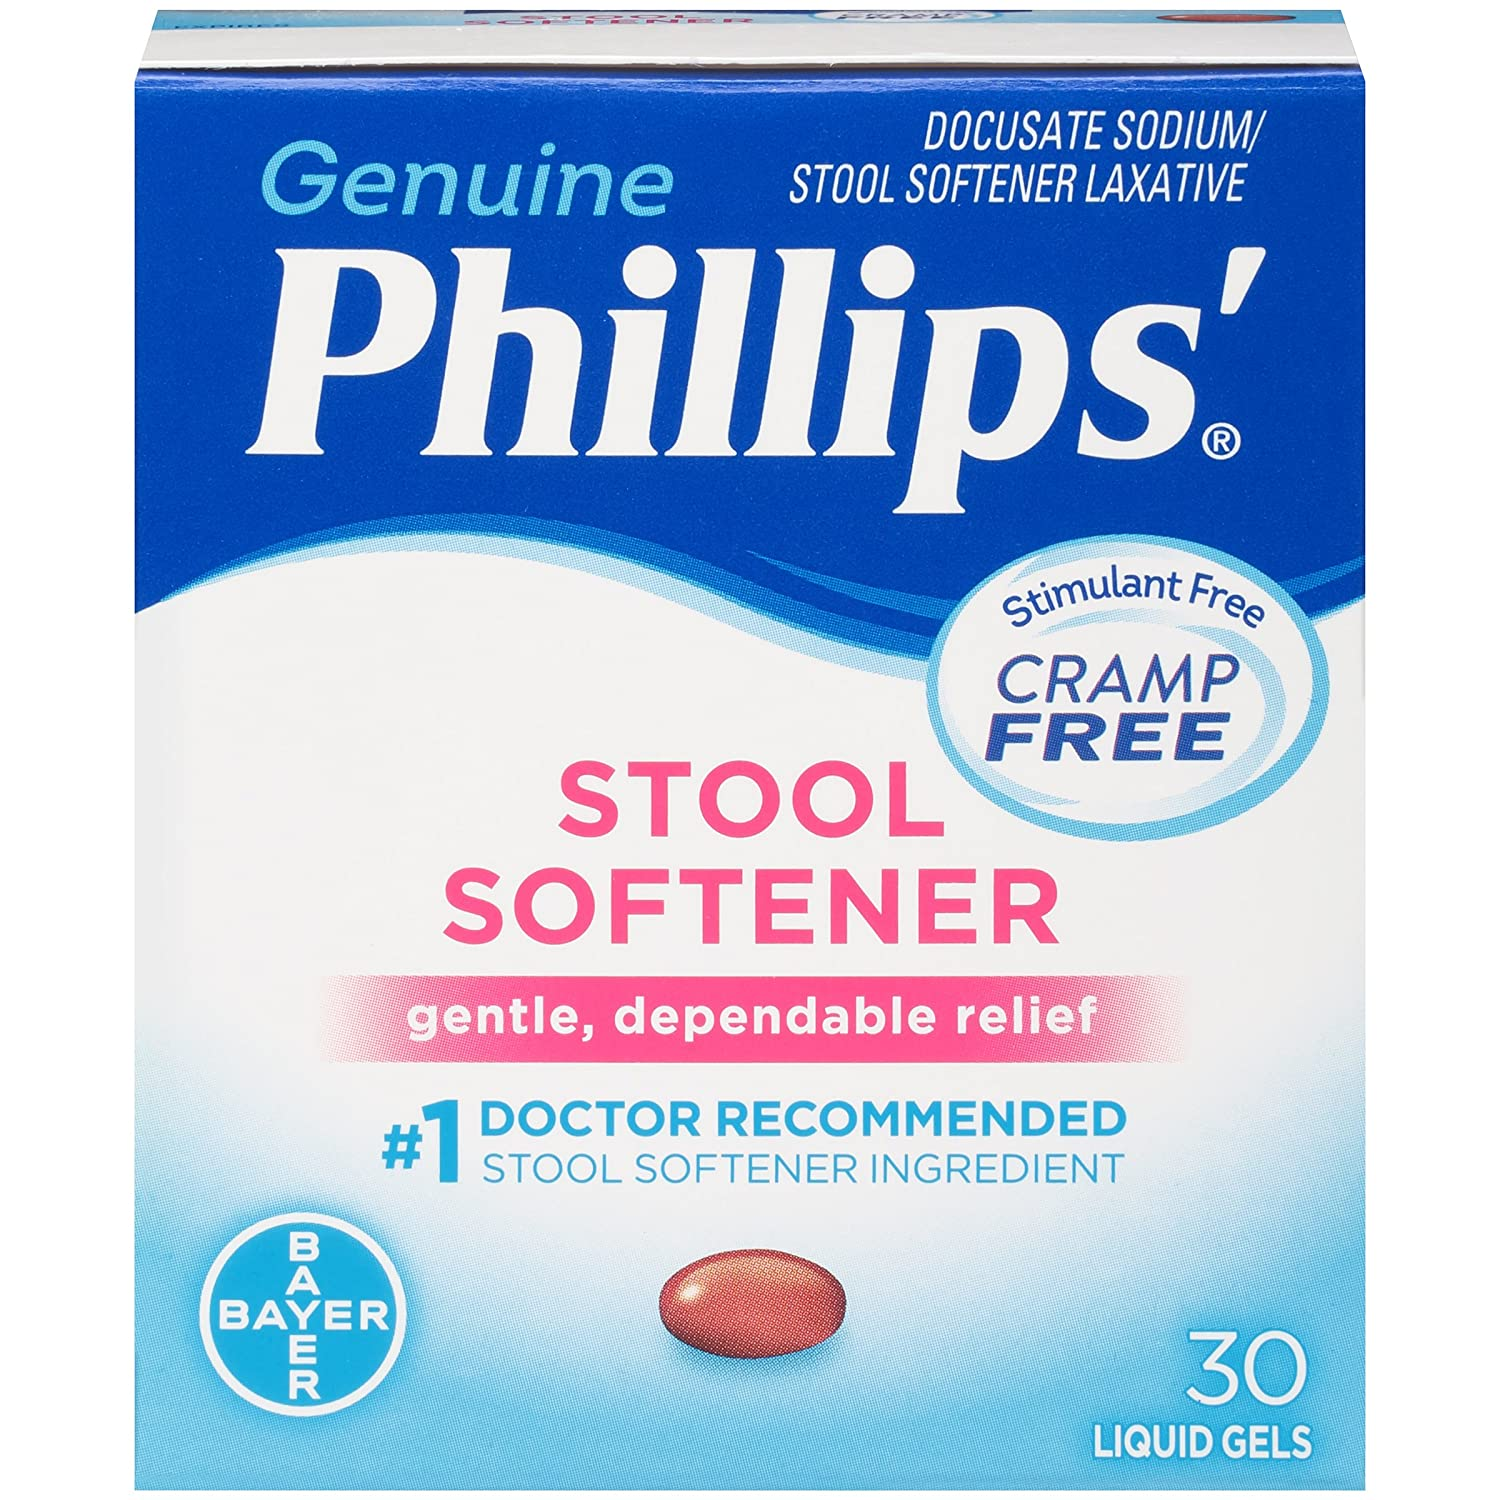 Amazon.com: Phillips Stool Softener Liquid Gels (30-Count Box, Pack of 2): Health & Personal Care